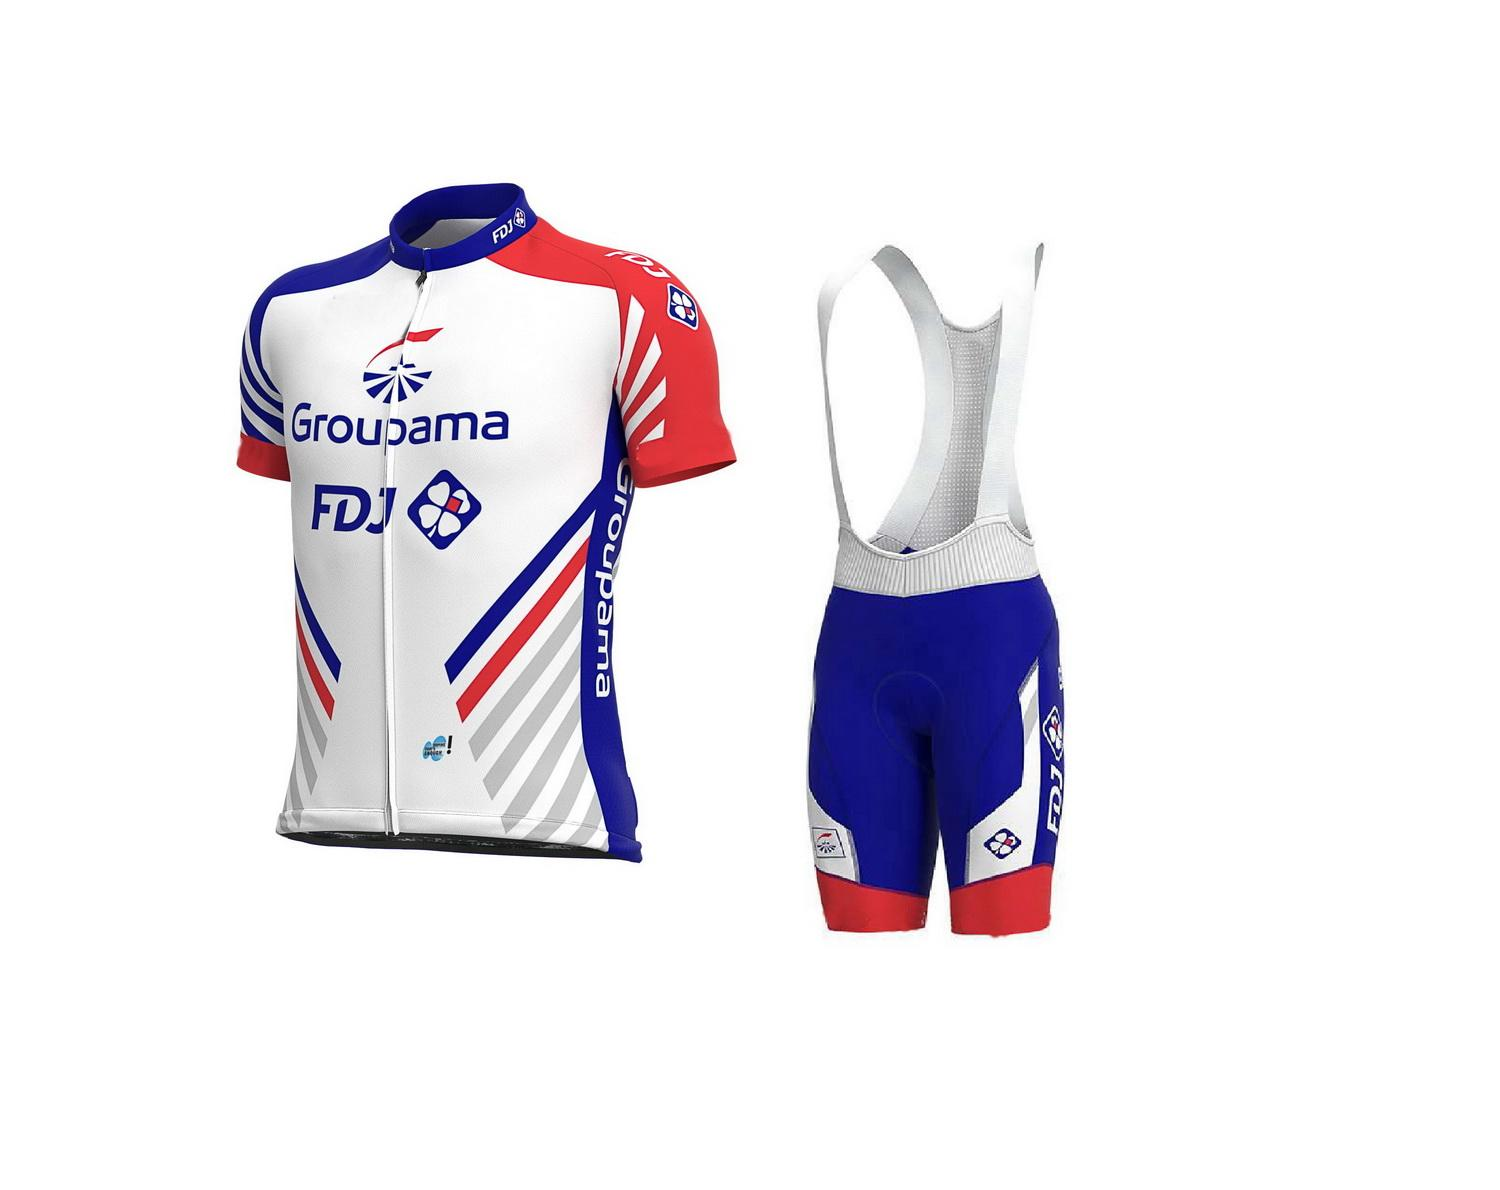 2020 GROUPAMA FDJ PRO TEAM BLUE SHORT SLEEVE CYCLING JERSEY SUMMER CYCLING WEAR ROPA CICLISMO+ BIB SHORTS 3D GEL PAD SET SIZE:XS-4XL